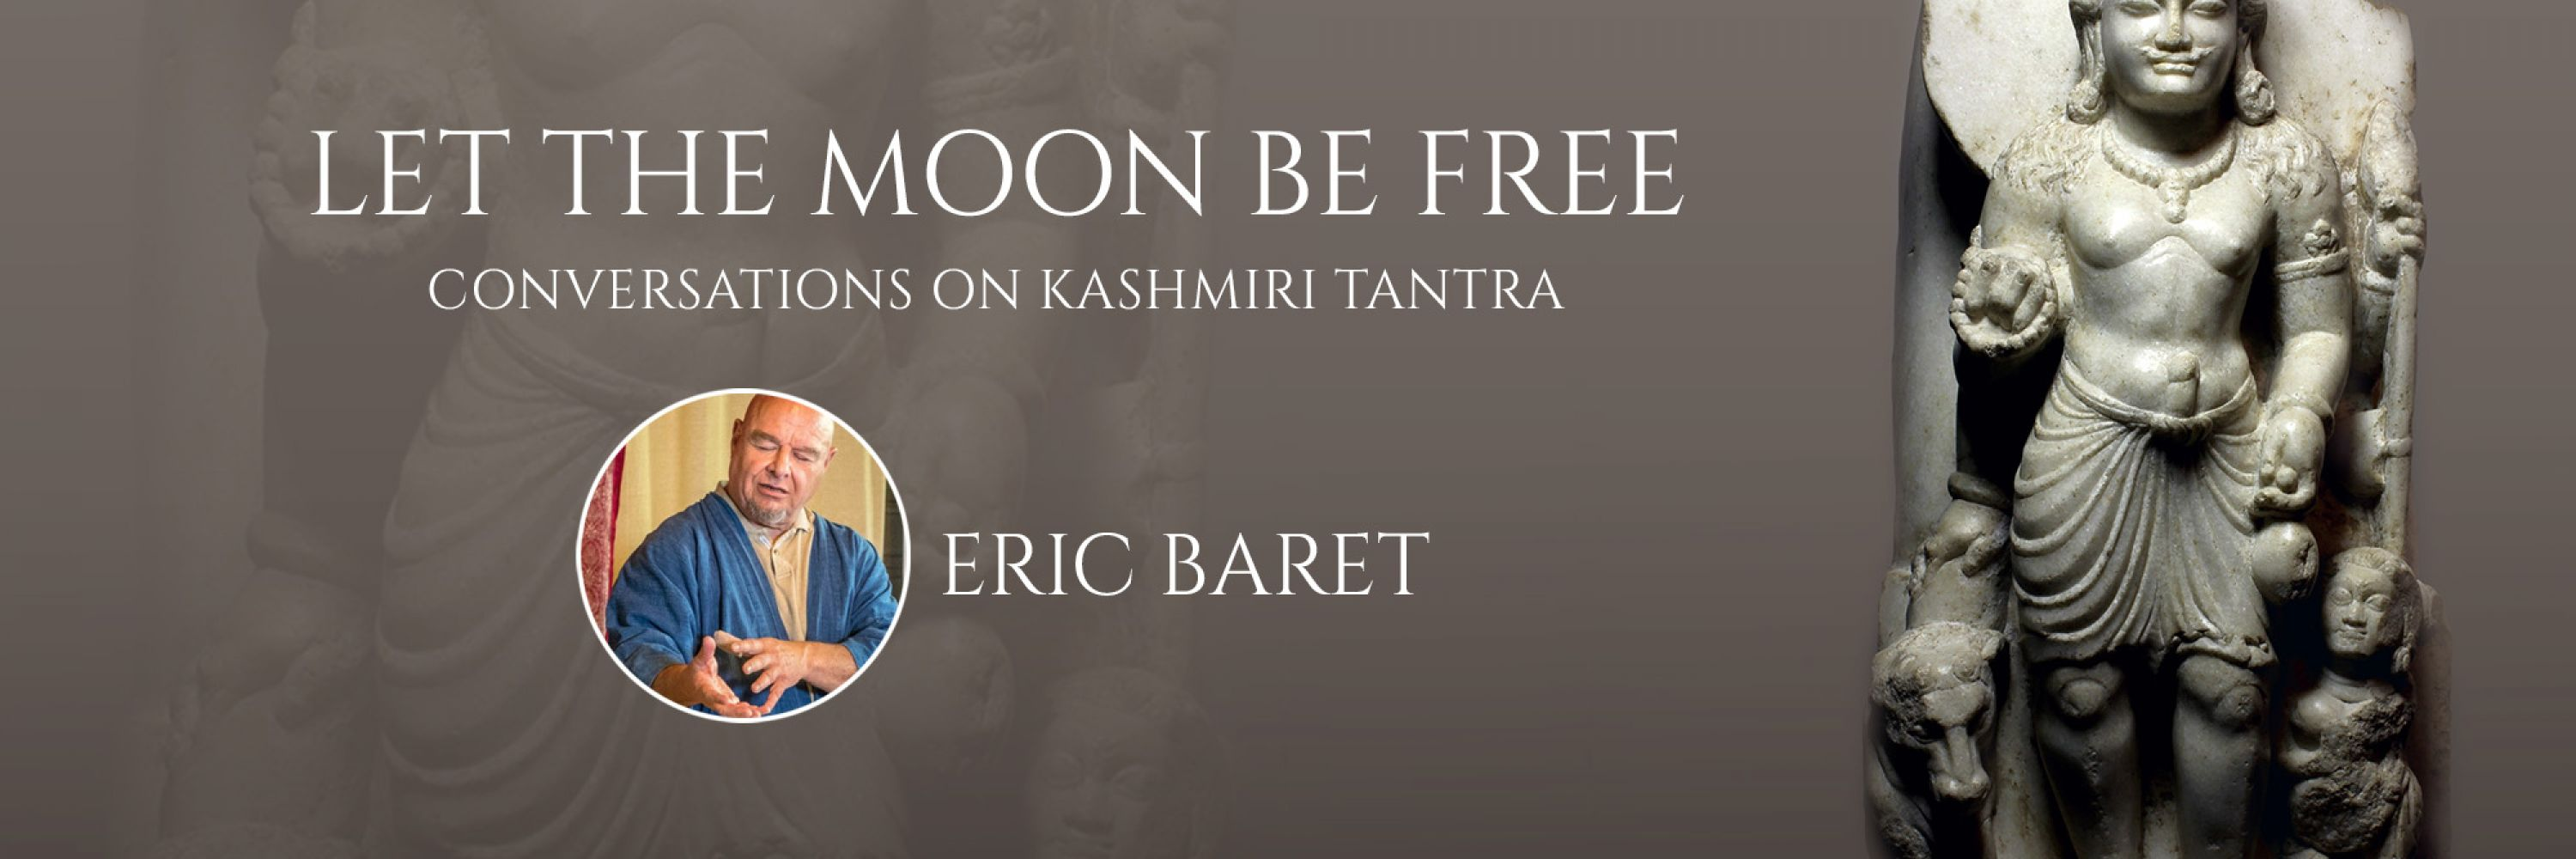 Let the Moon Be Free – Conversations on Kashmiri Tantra